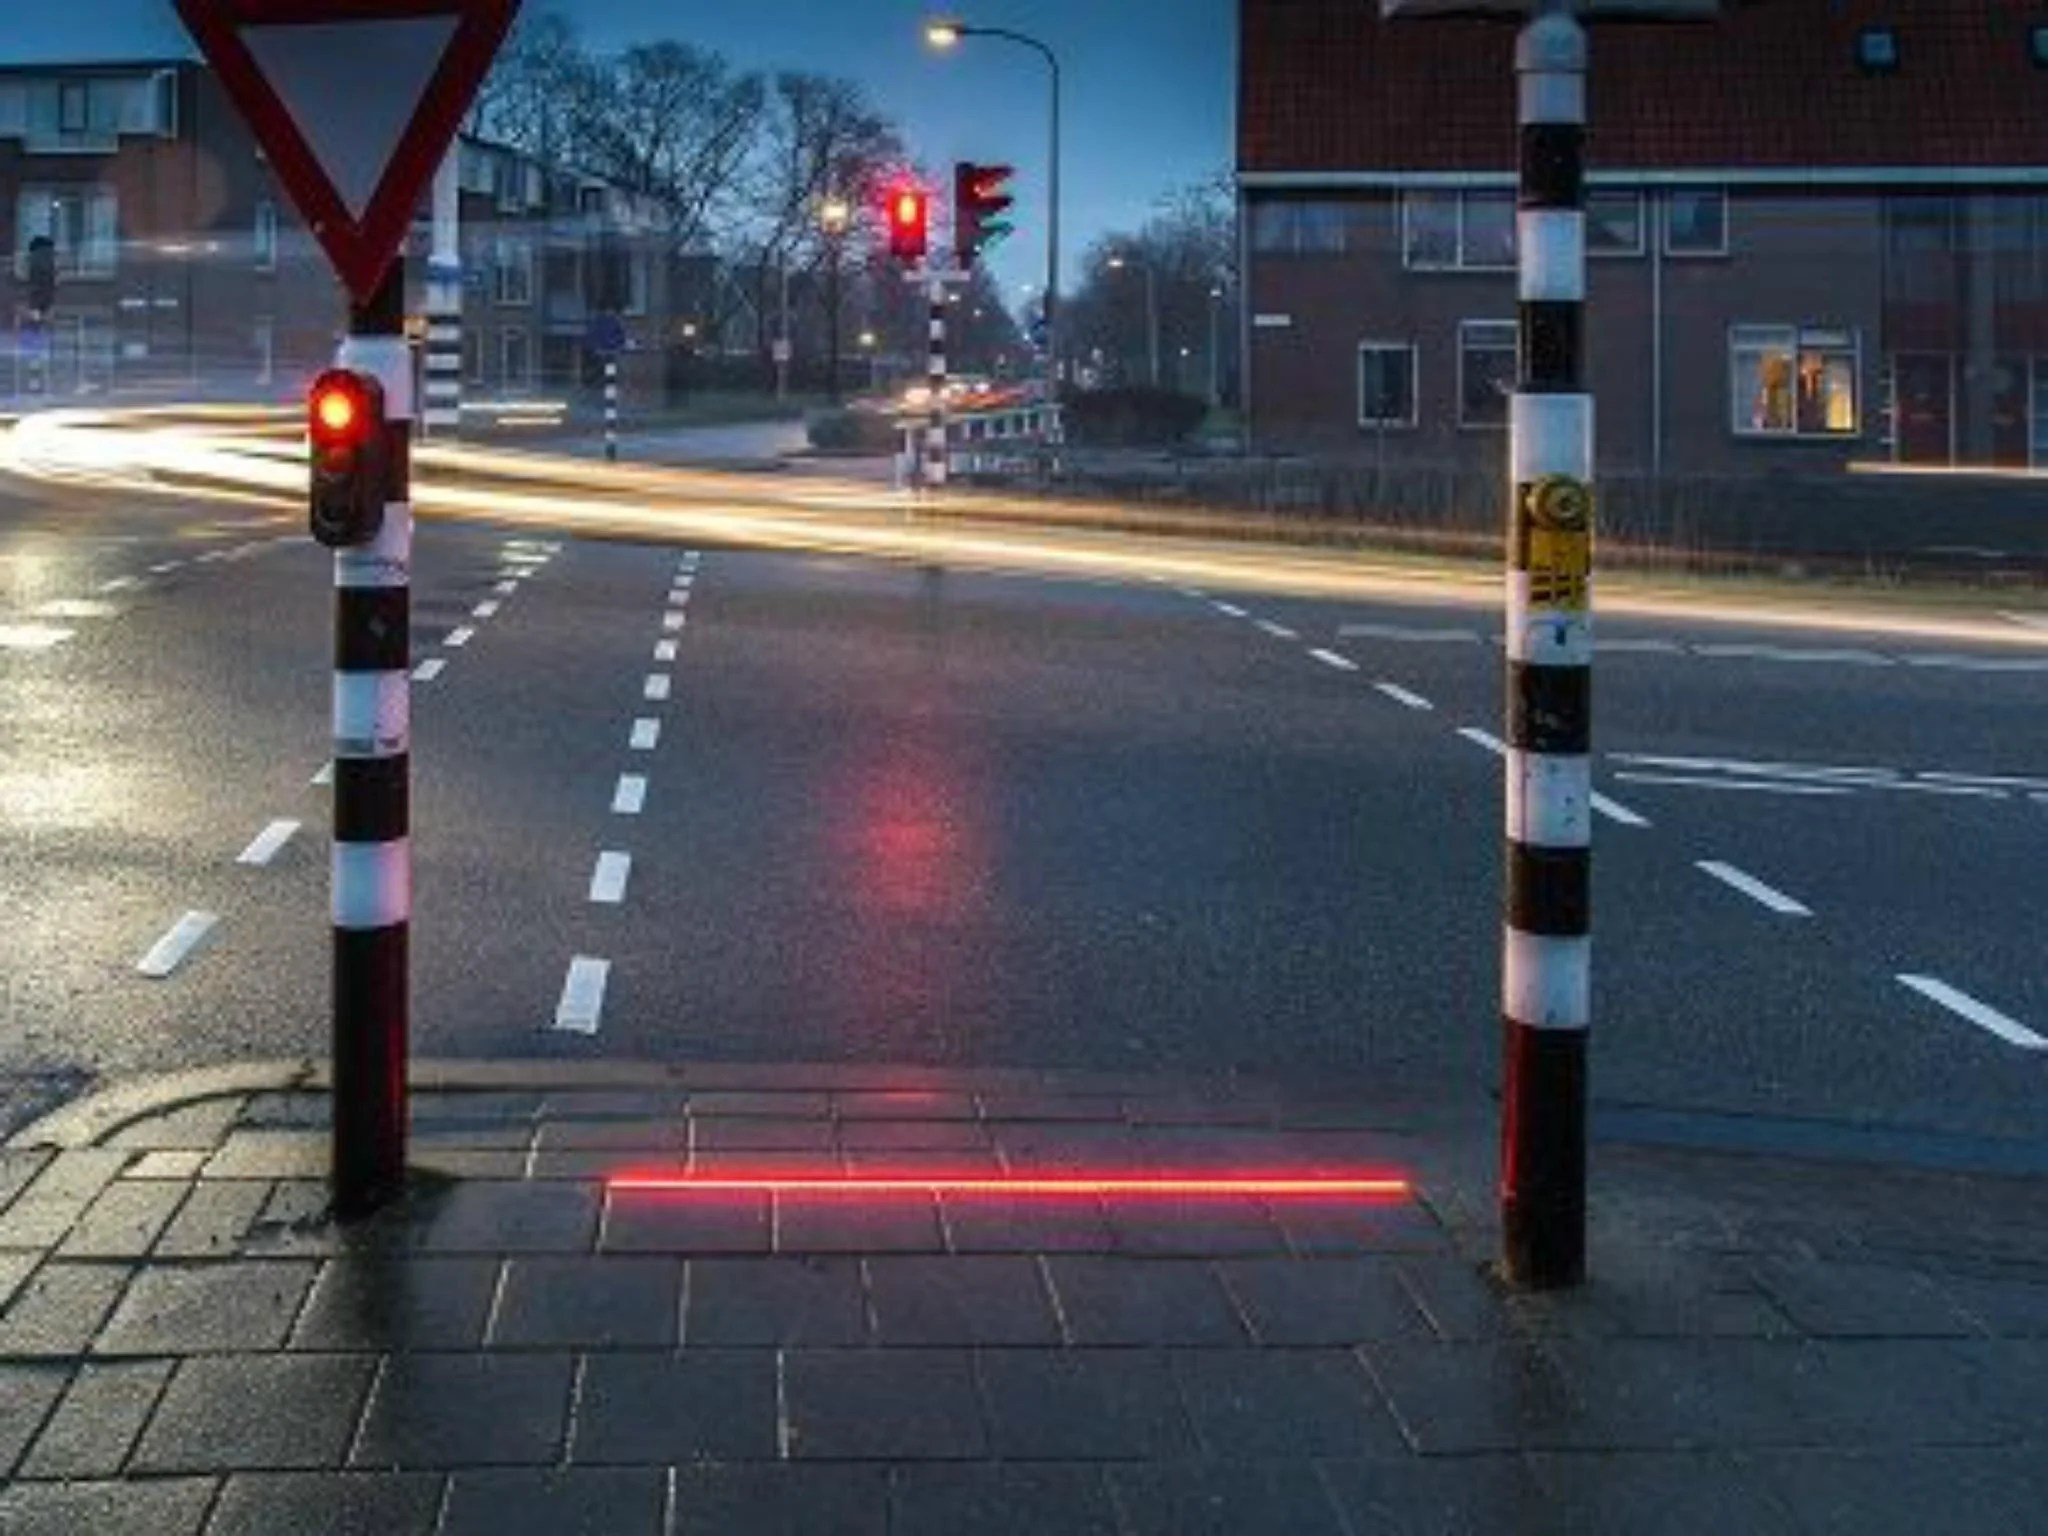 Traffic Lights Built Into Pavement For Smartphone Using